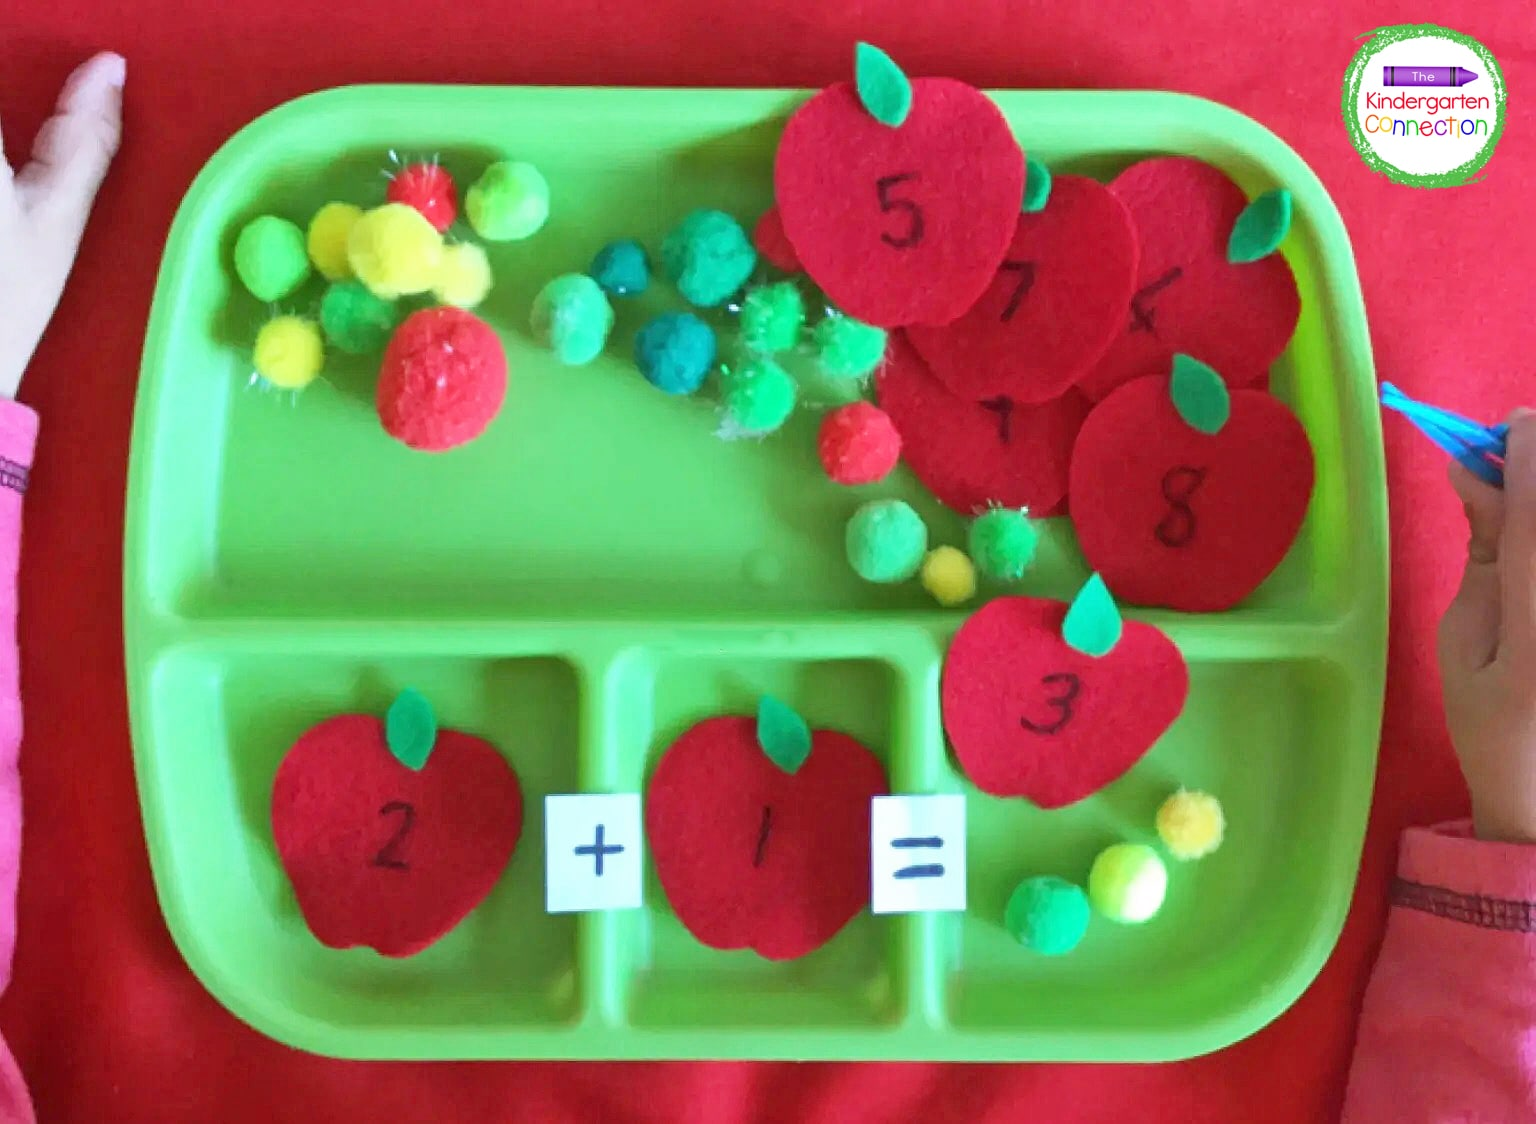 Kids can place the apples in the tray compartments to build the addition sentences.